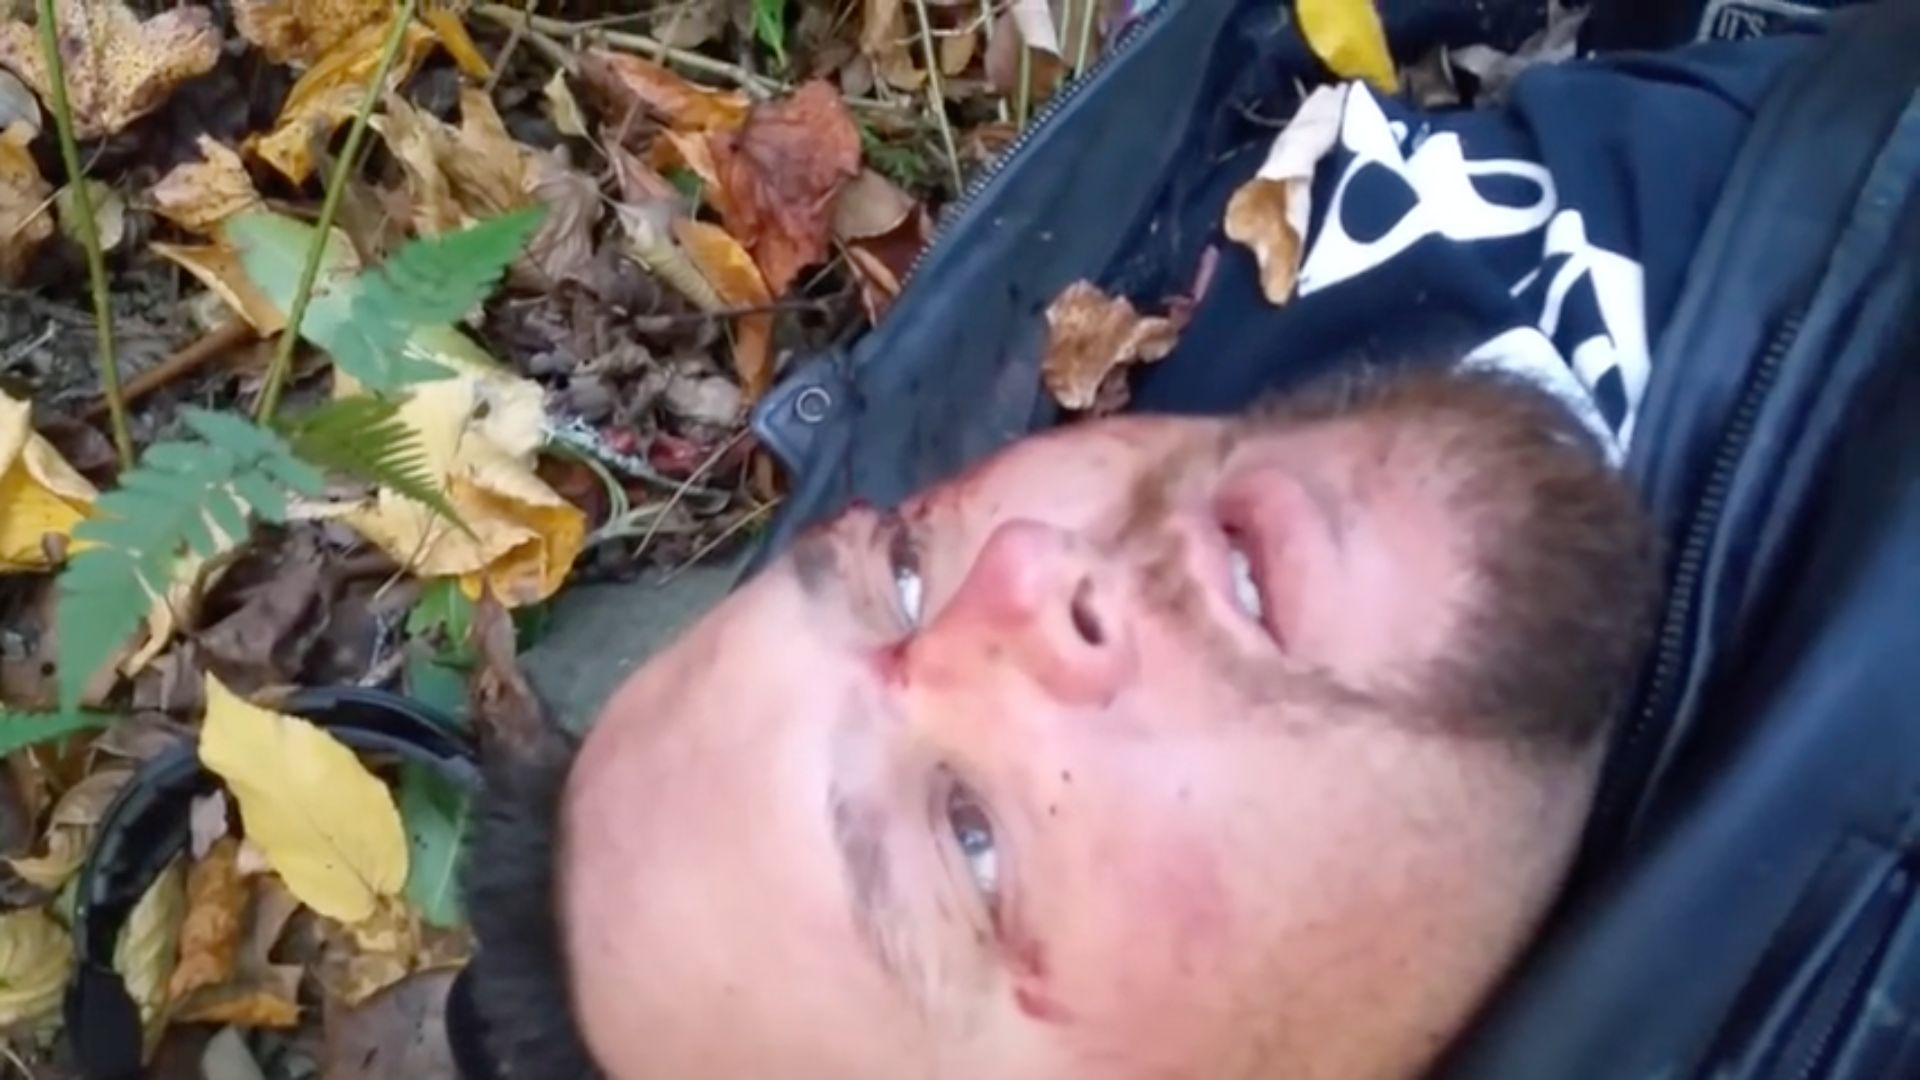 Video released by Kevin Diepenbrock shows the injured motorcyclist saying what he expected were his final goodbyes to his family